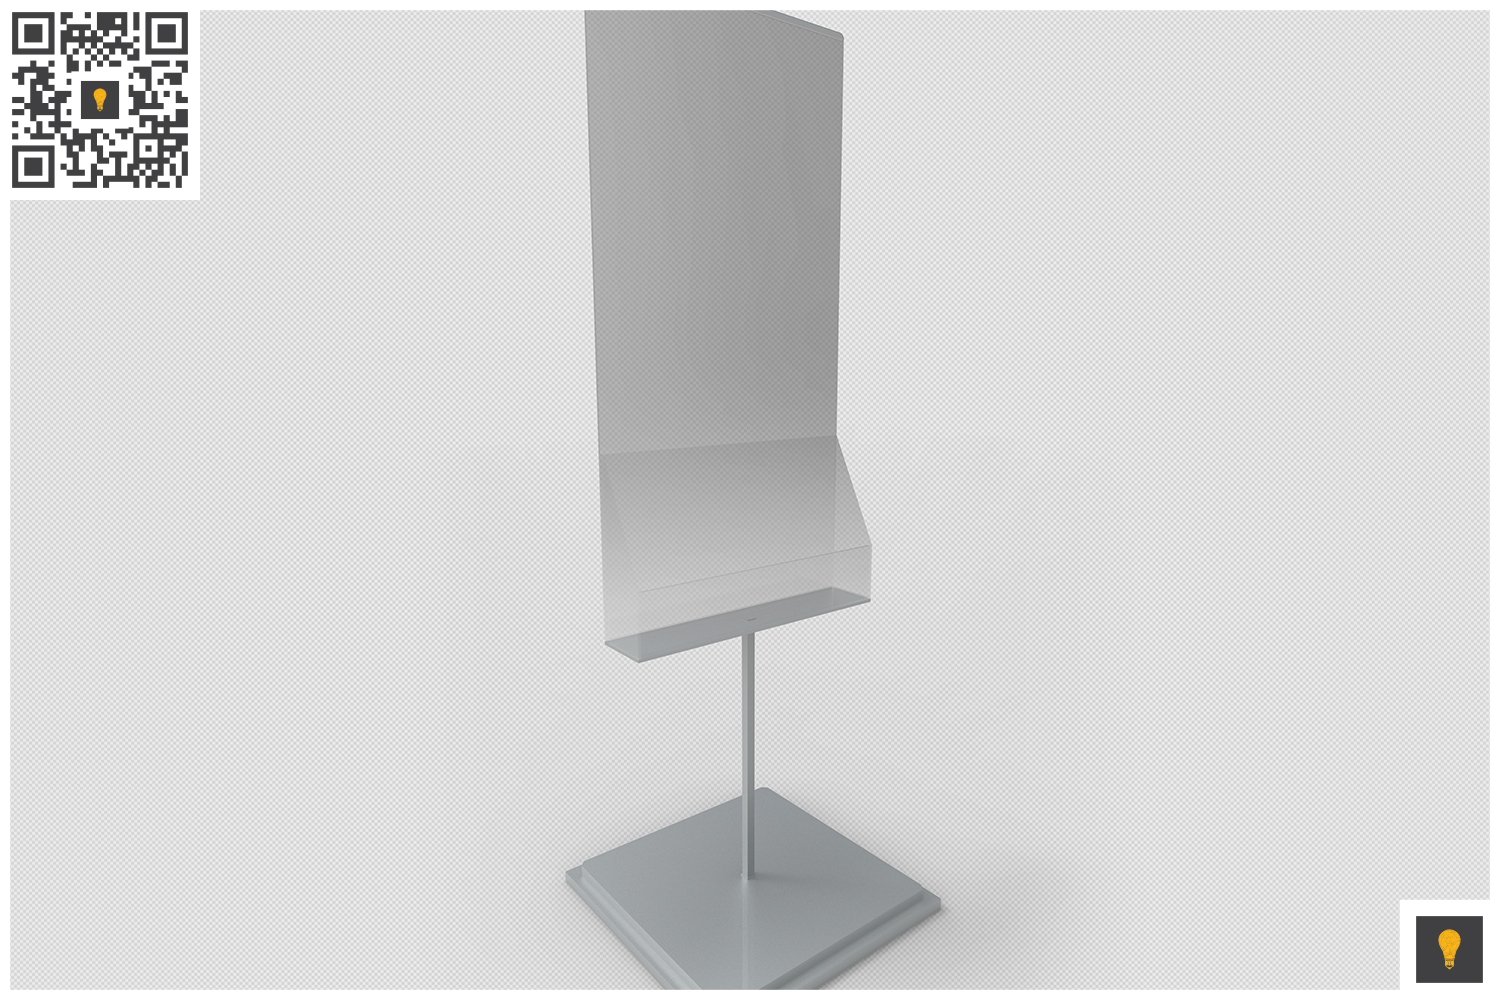 Poster Stand with Rack 3D Render example image 3